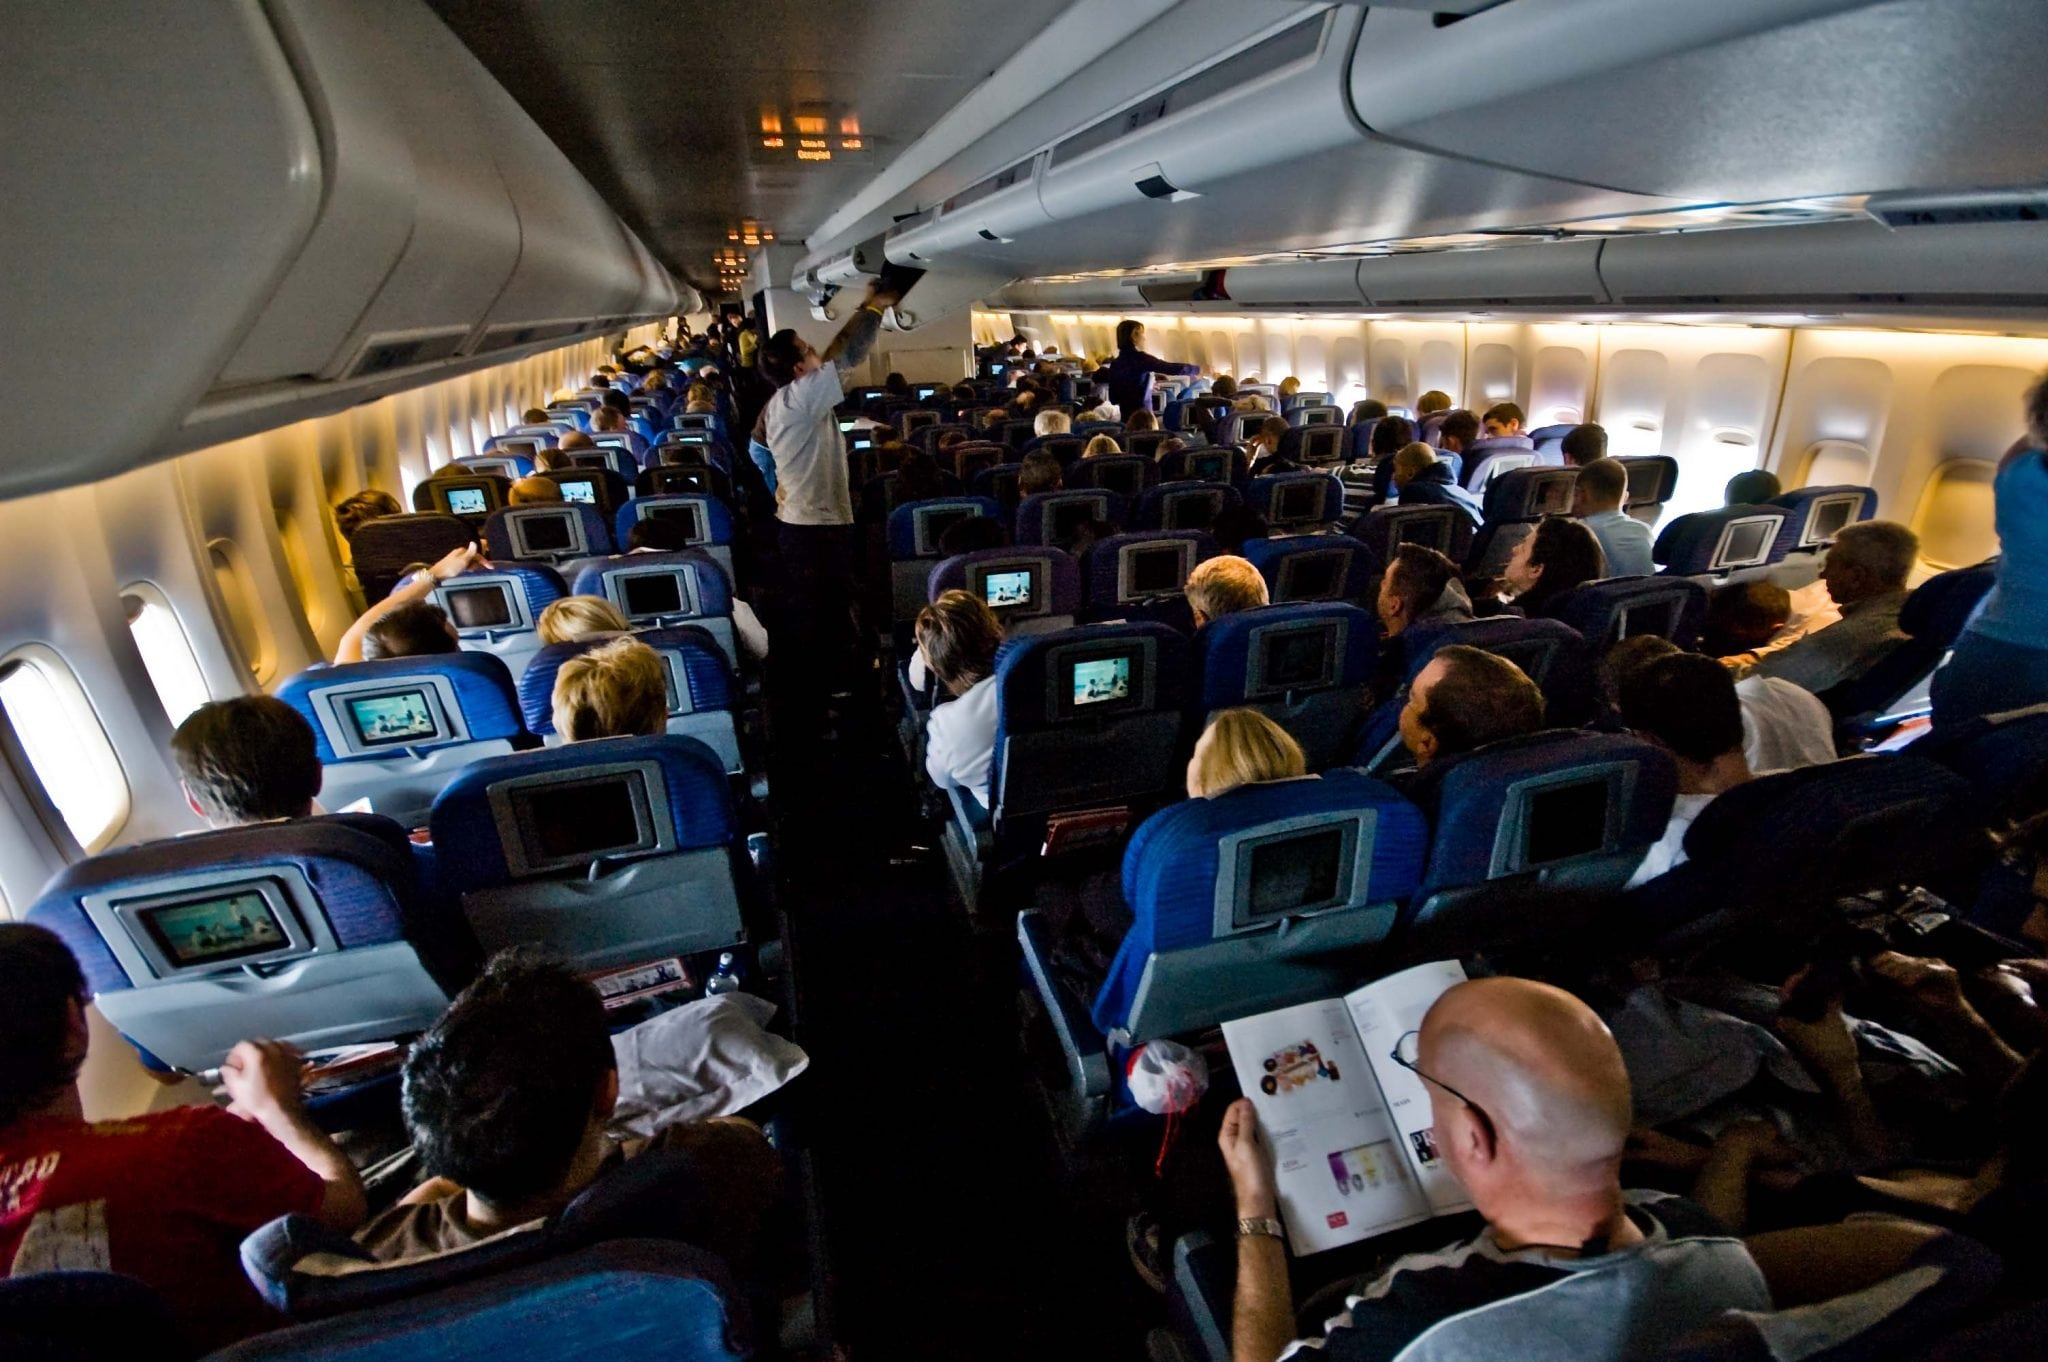 A full airplane cabin